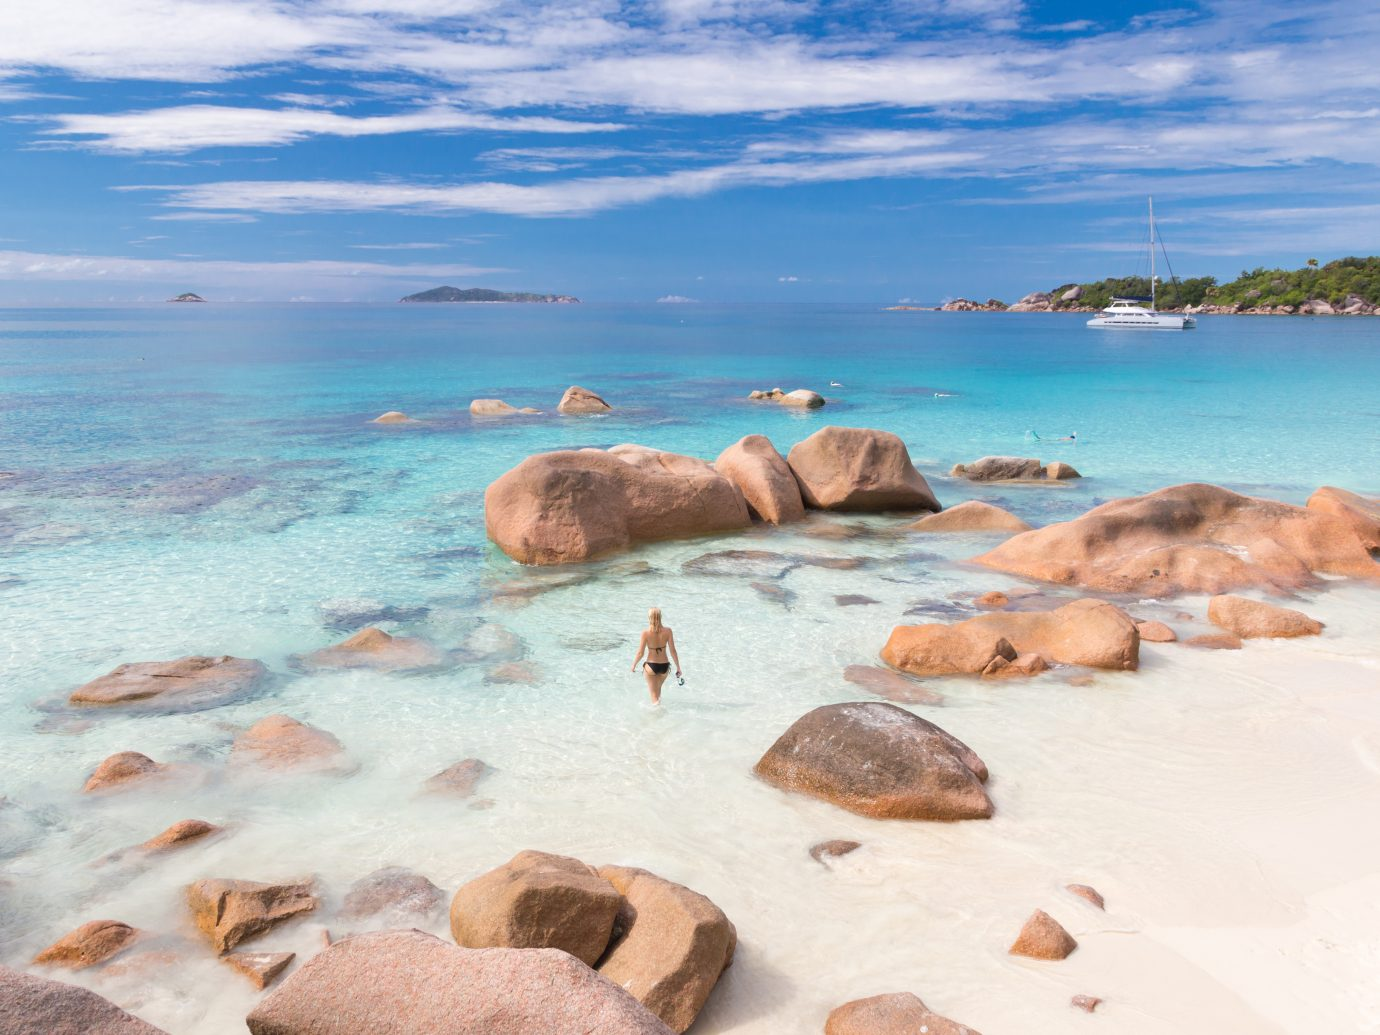 4 Anse Lazio, Prasilin Island, Seychelles, Woman wearing stylish bikini enjoying swimming and snorkeling at amazing Anse Lazio beach on Praslin Island, Seychelles. Summer vacations on picture perfect tropical beach concept.